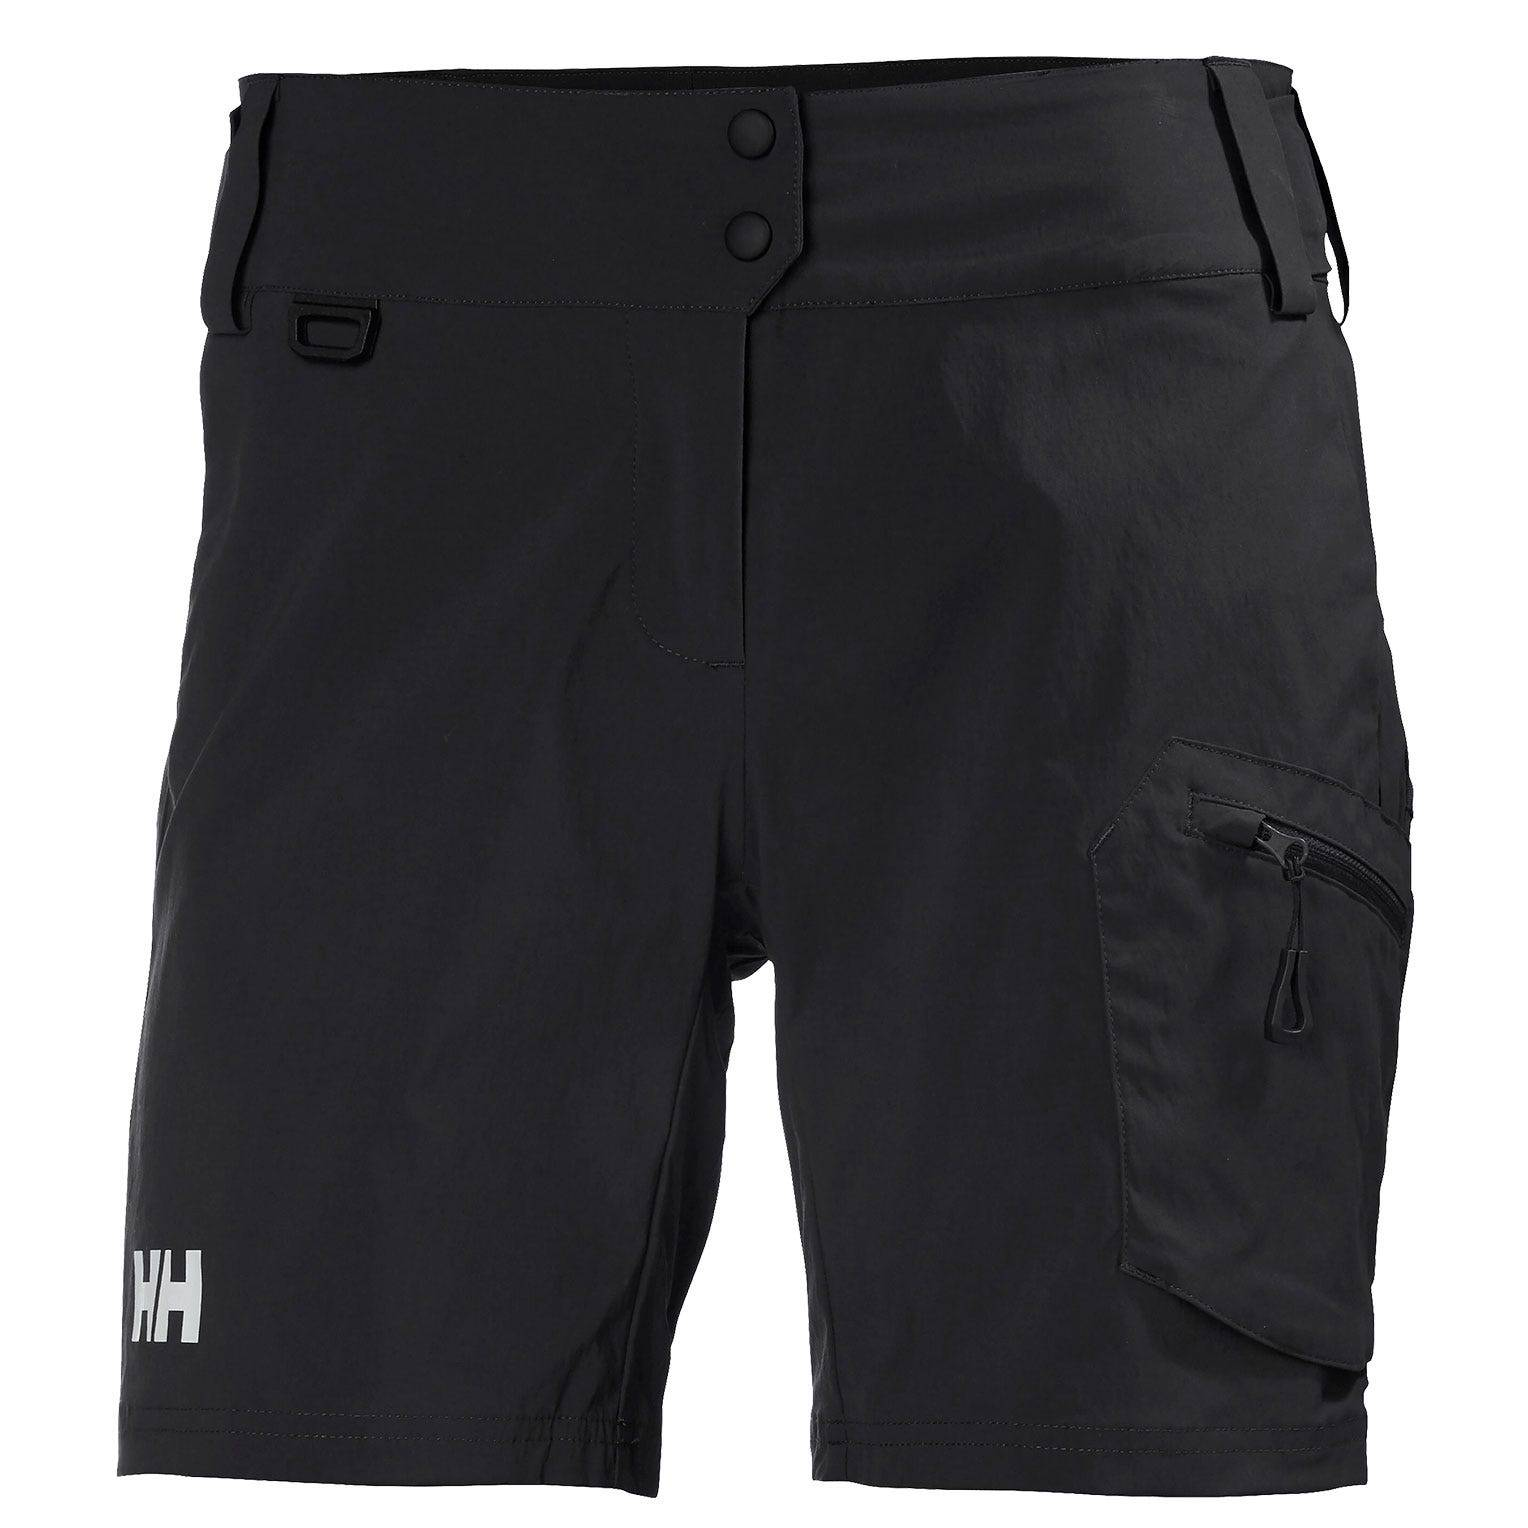 Helly Hansen W Crew Dynamic Shorts Womens Sailing Pant Black 29